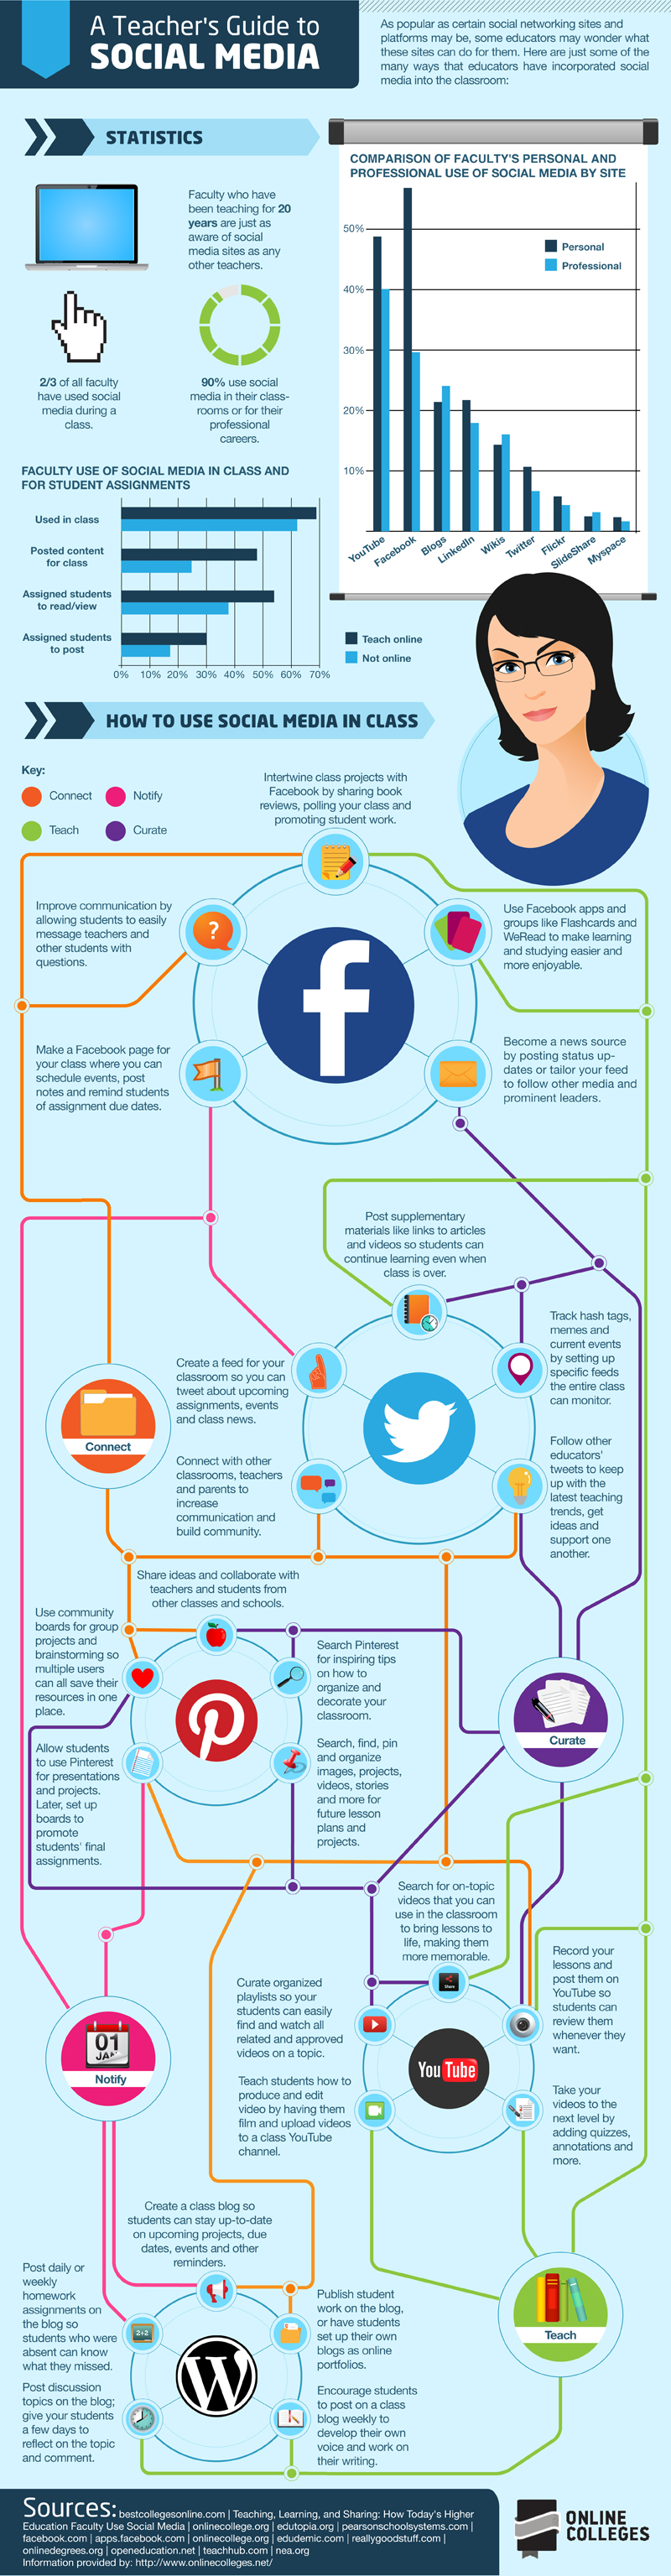 Social Media in Education-Infographic